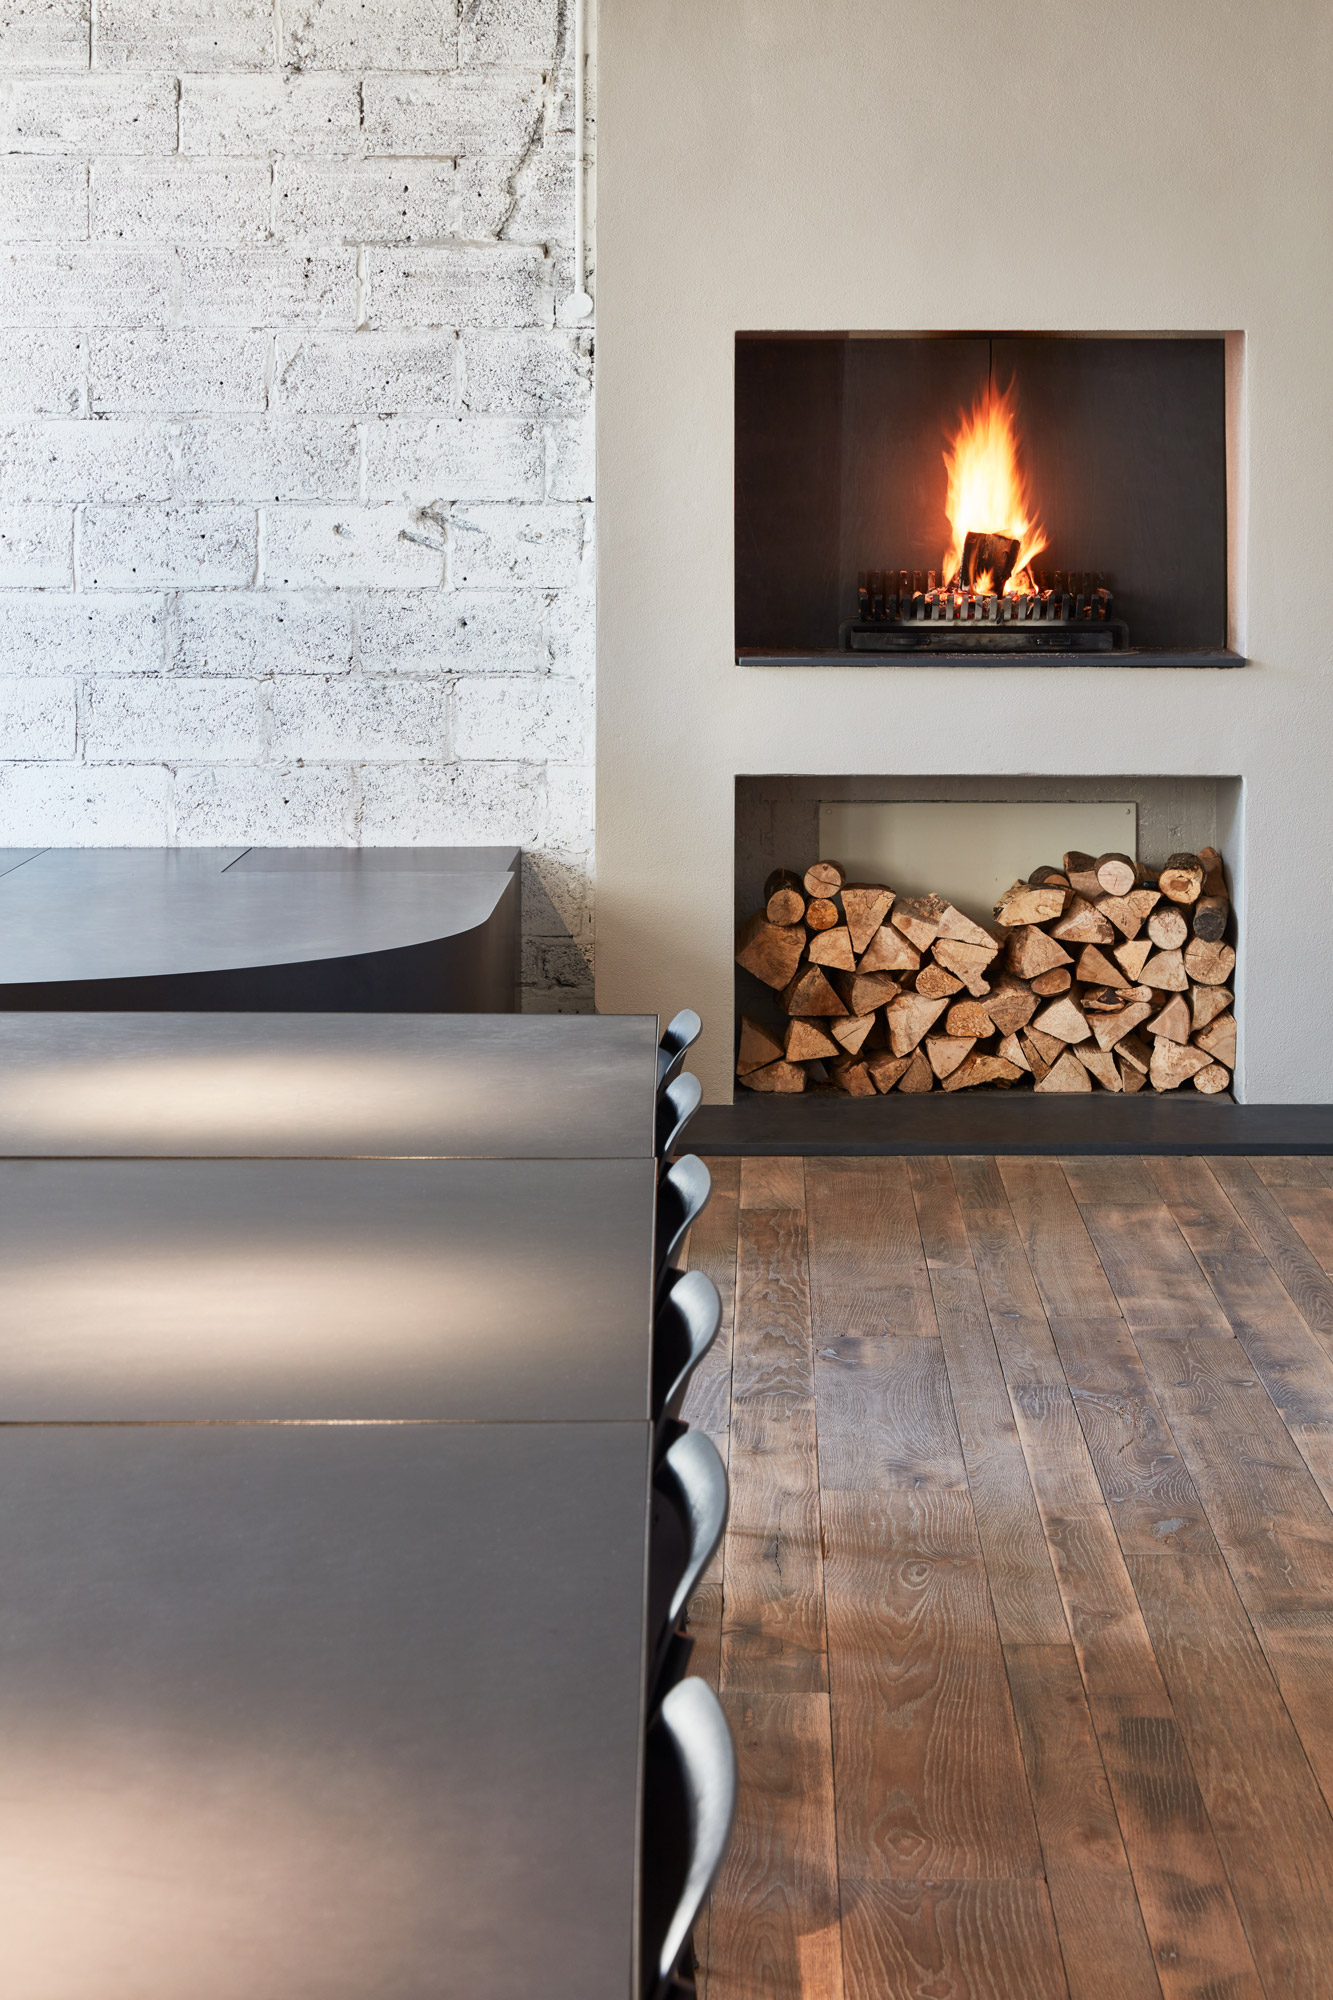 Black dining table with burning fire in background and log storage